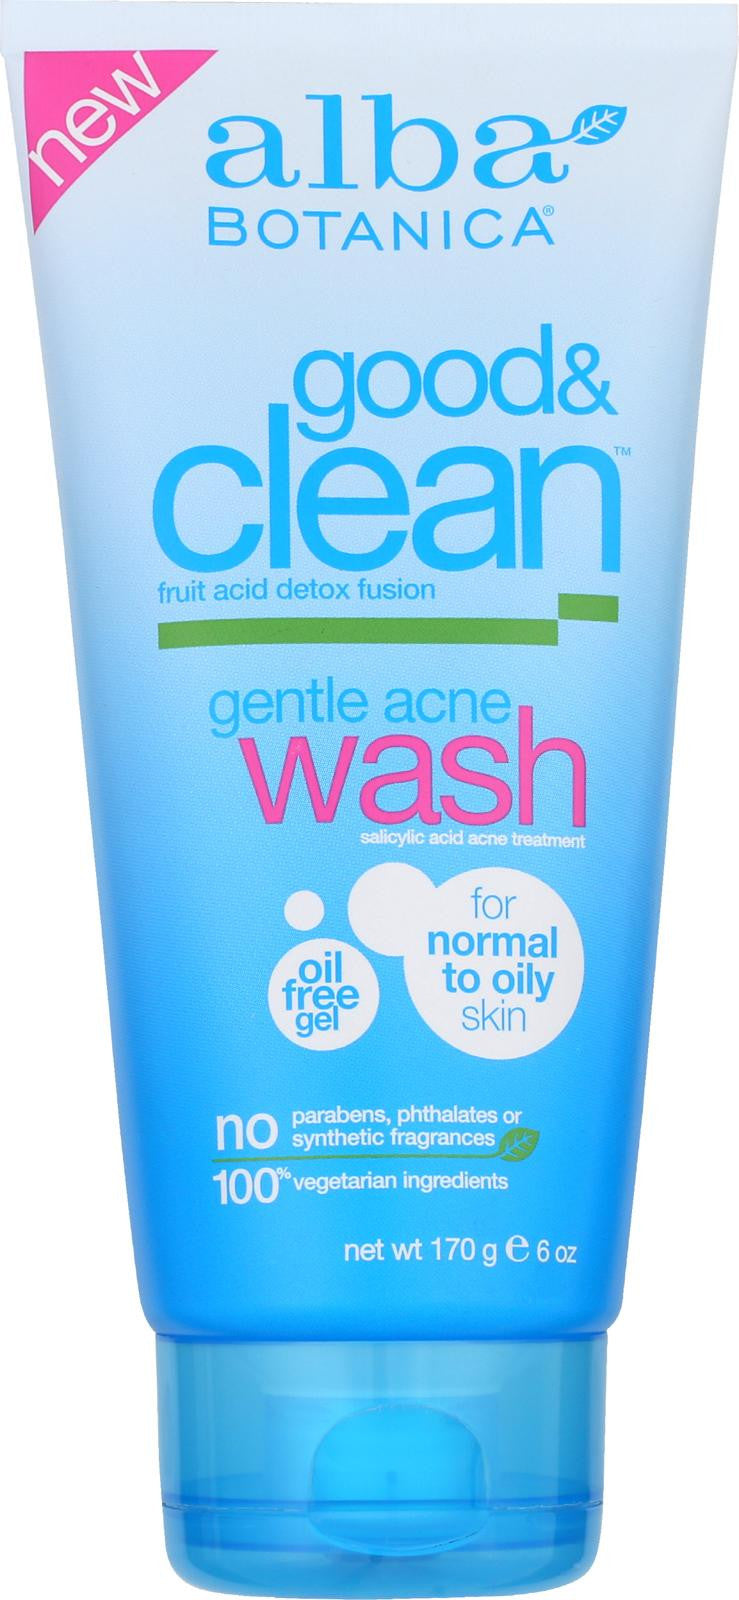 Alba Botanicaå¨ Good & Clean Gentle Acne Wash - 6 fl oz-Alba Botanica-pantryperks